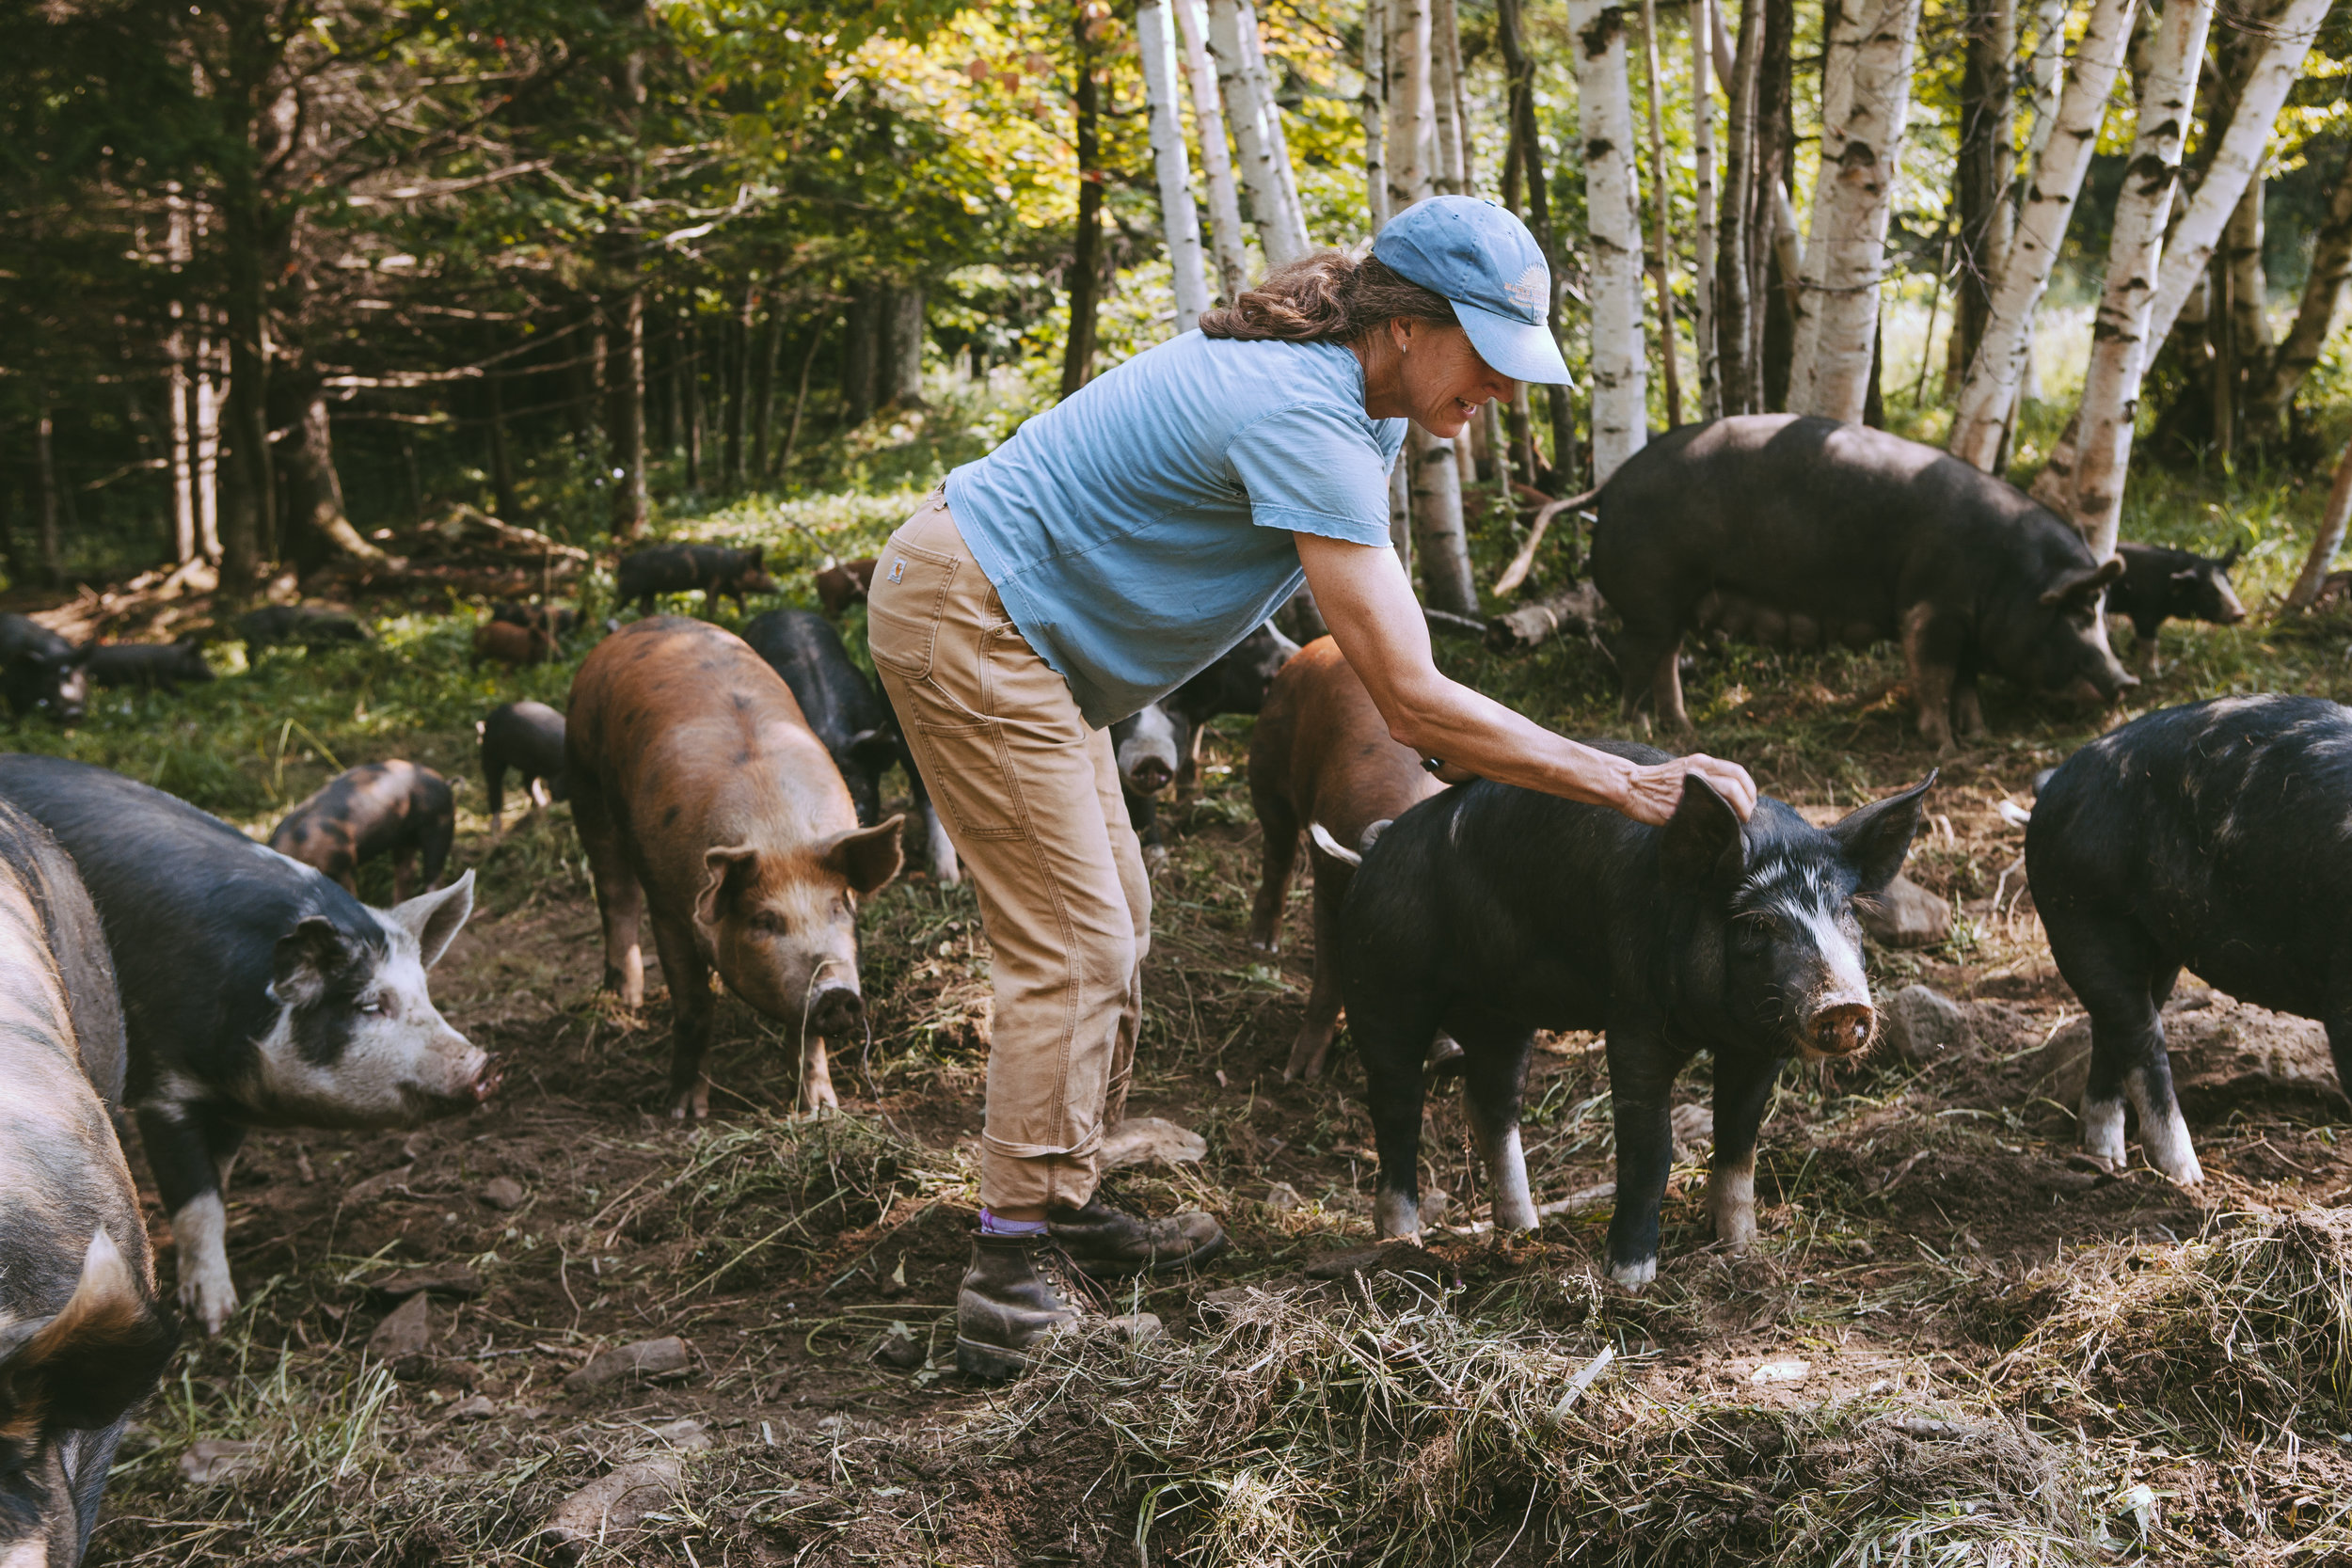 Beth Whiting and her heritage breed pigs at Maple Wind Farm